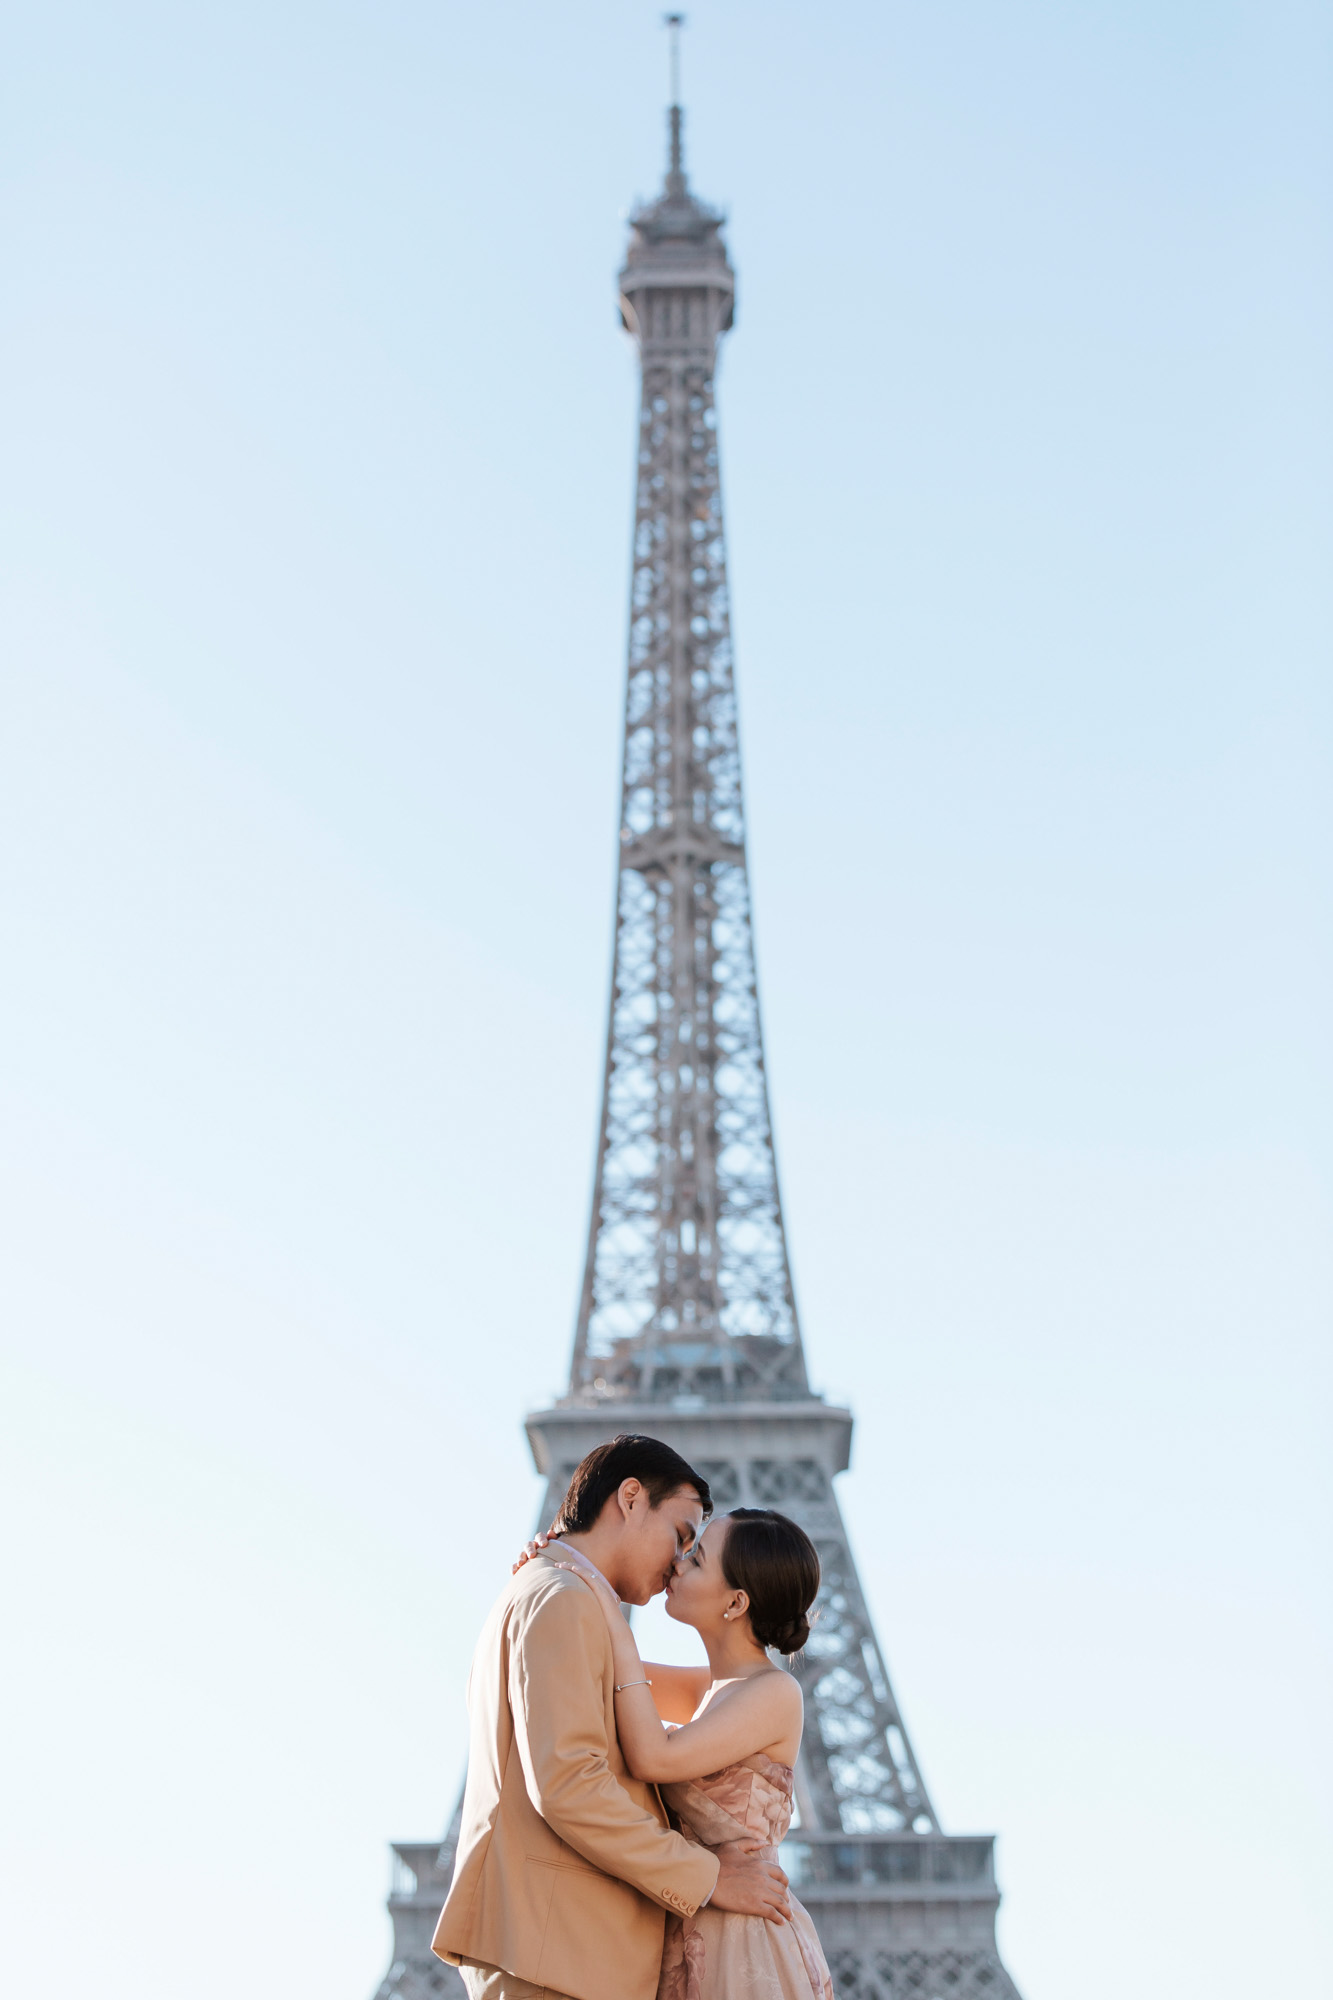 Pre-wedding romantic couple portrait session kissing by the Eiffel Tower in sunrise captured by Photographer in Paris Federico Guendel